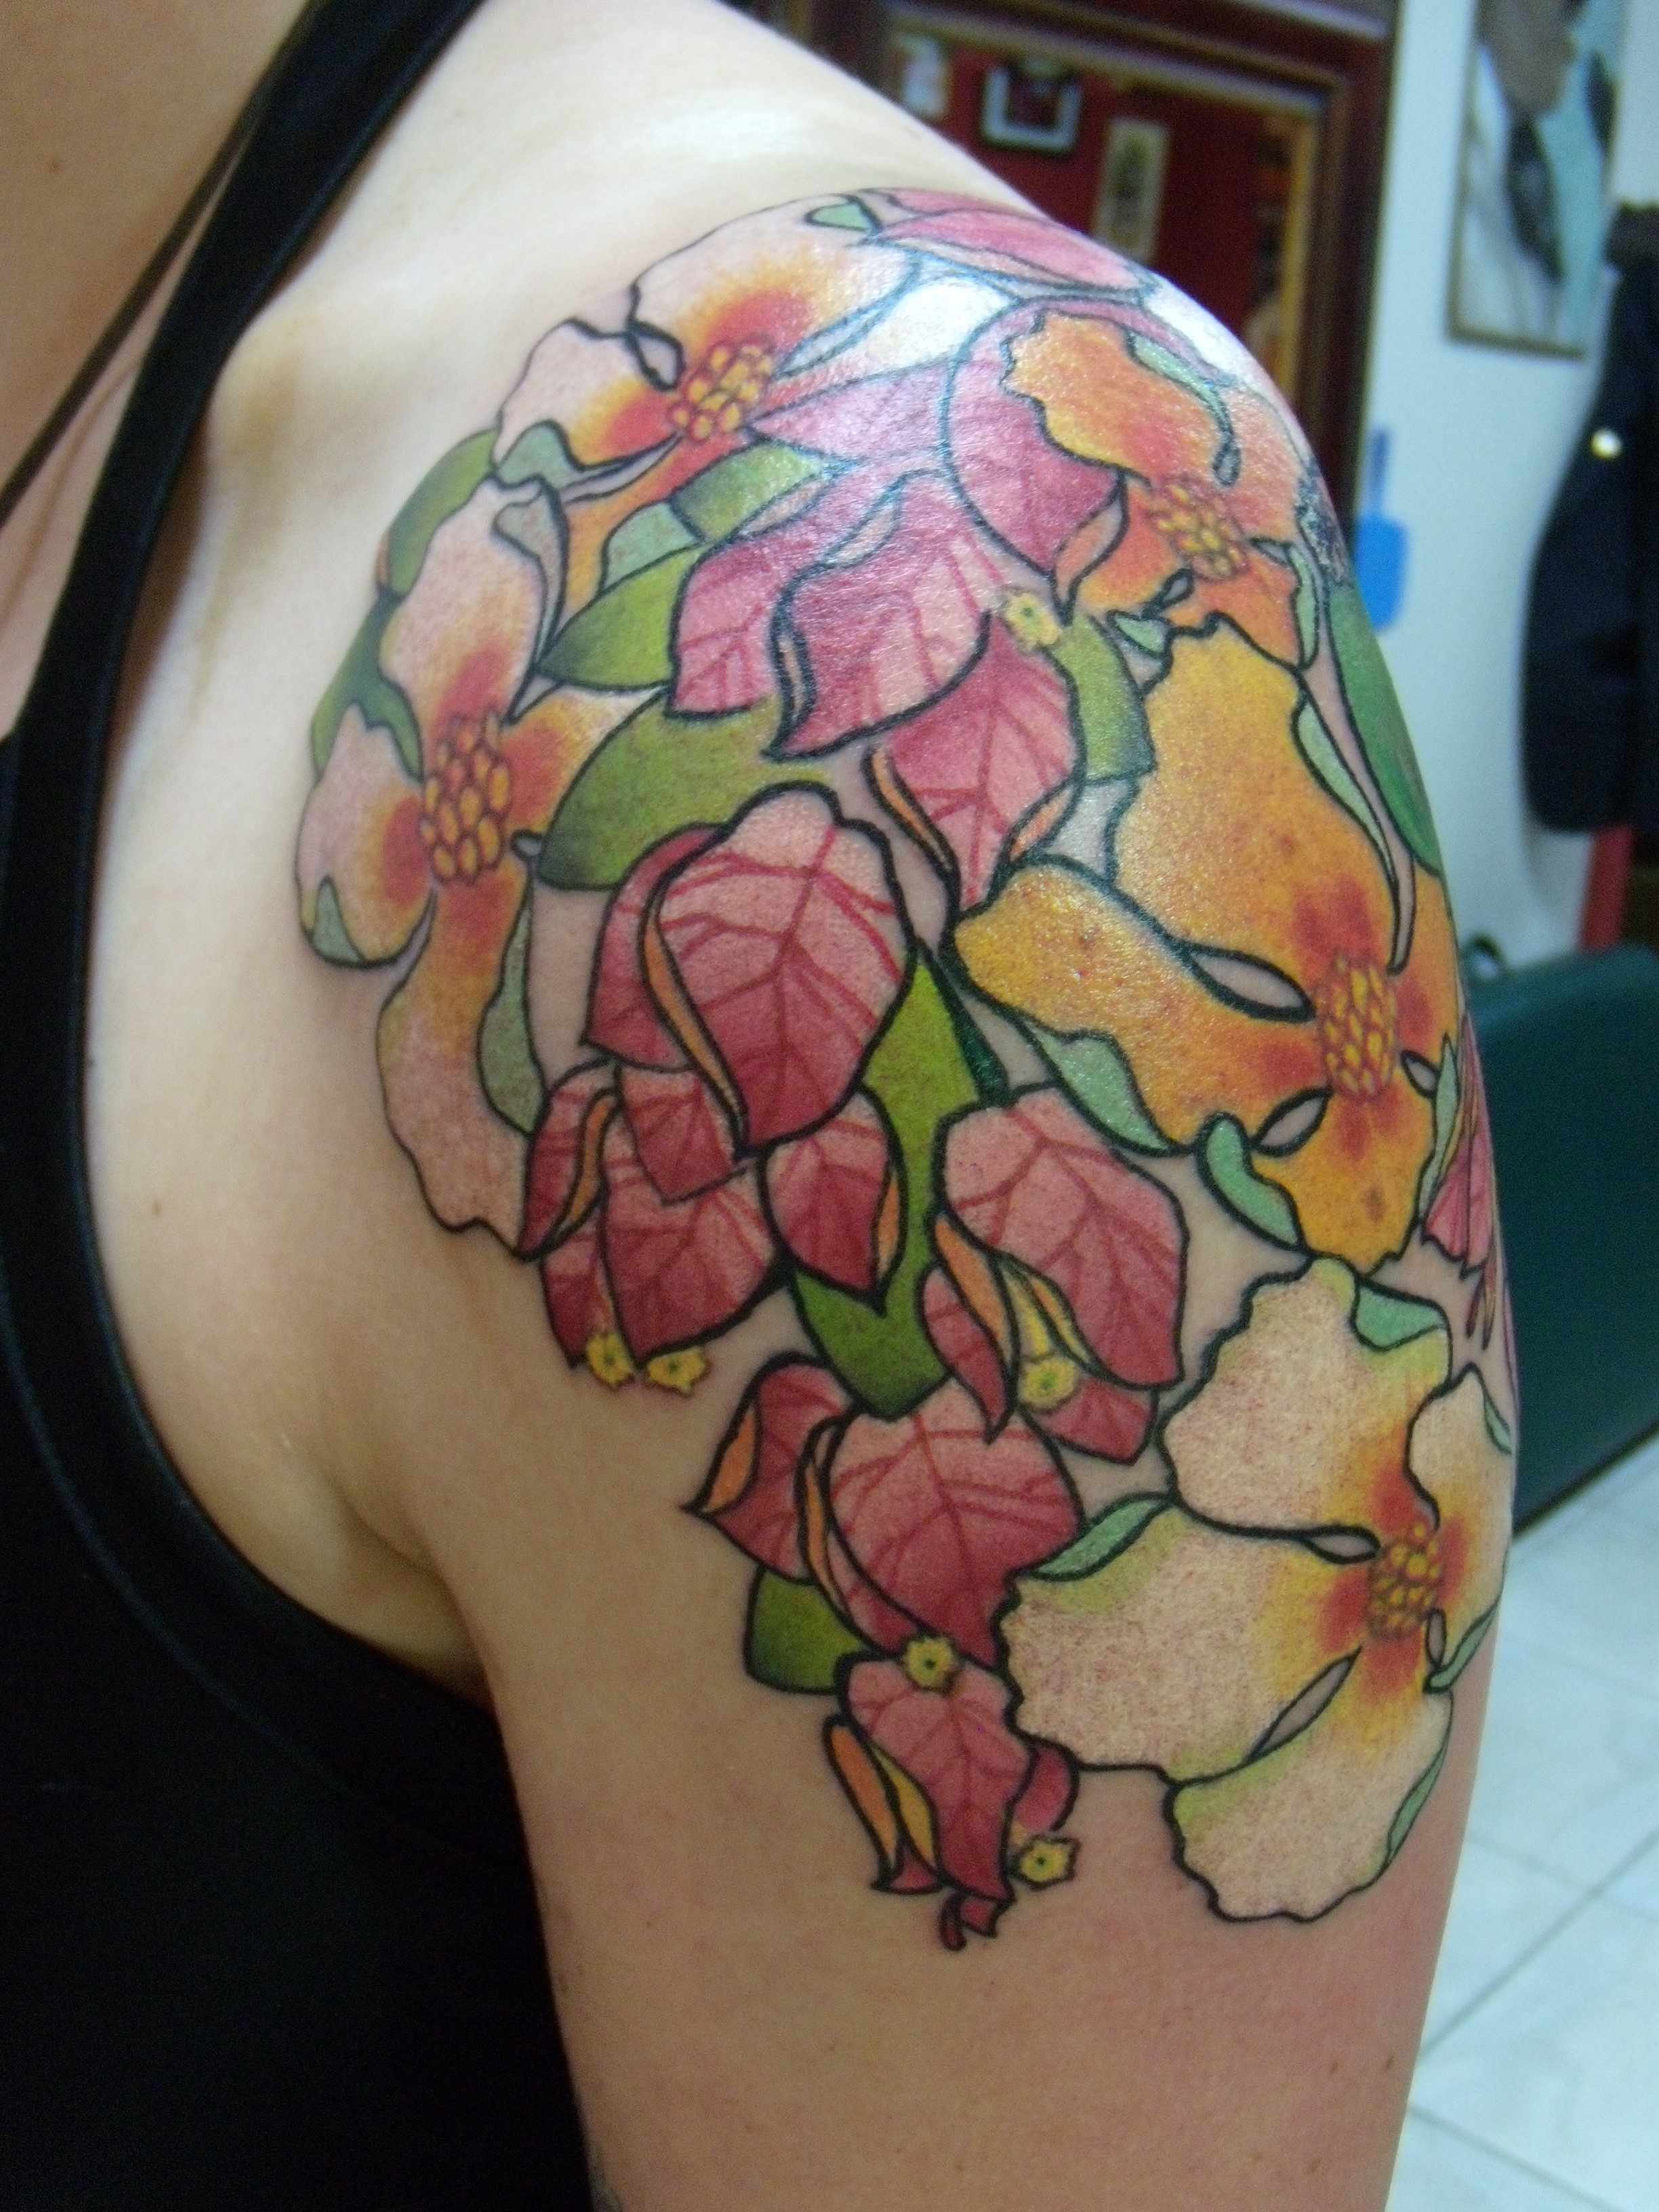 Black Women White Men Love >> Flower Tattoos Designs, Ideas and Meaning | Tattoos For You